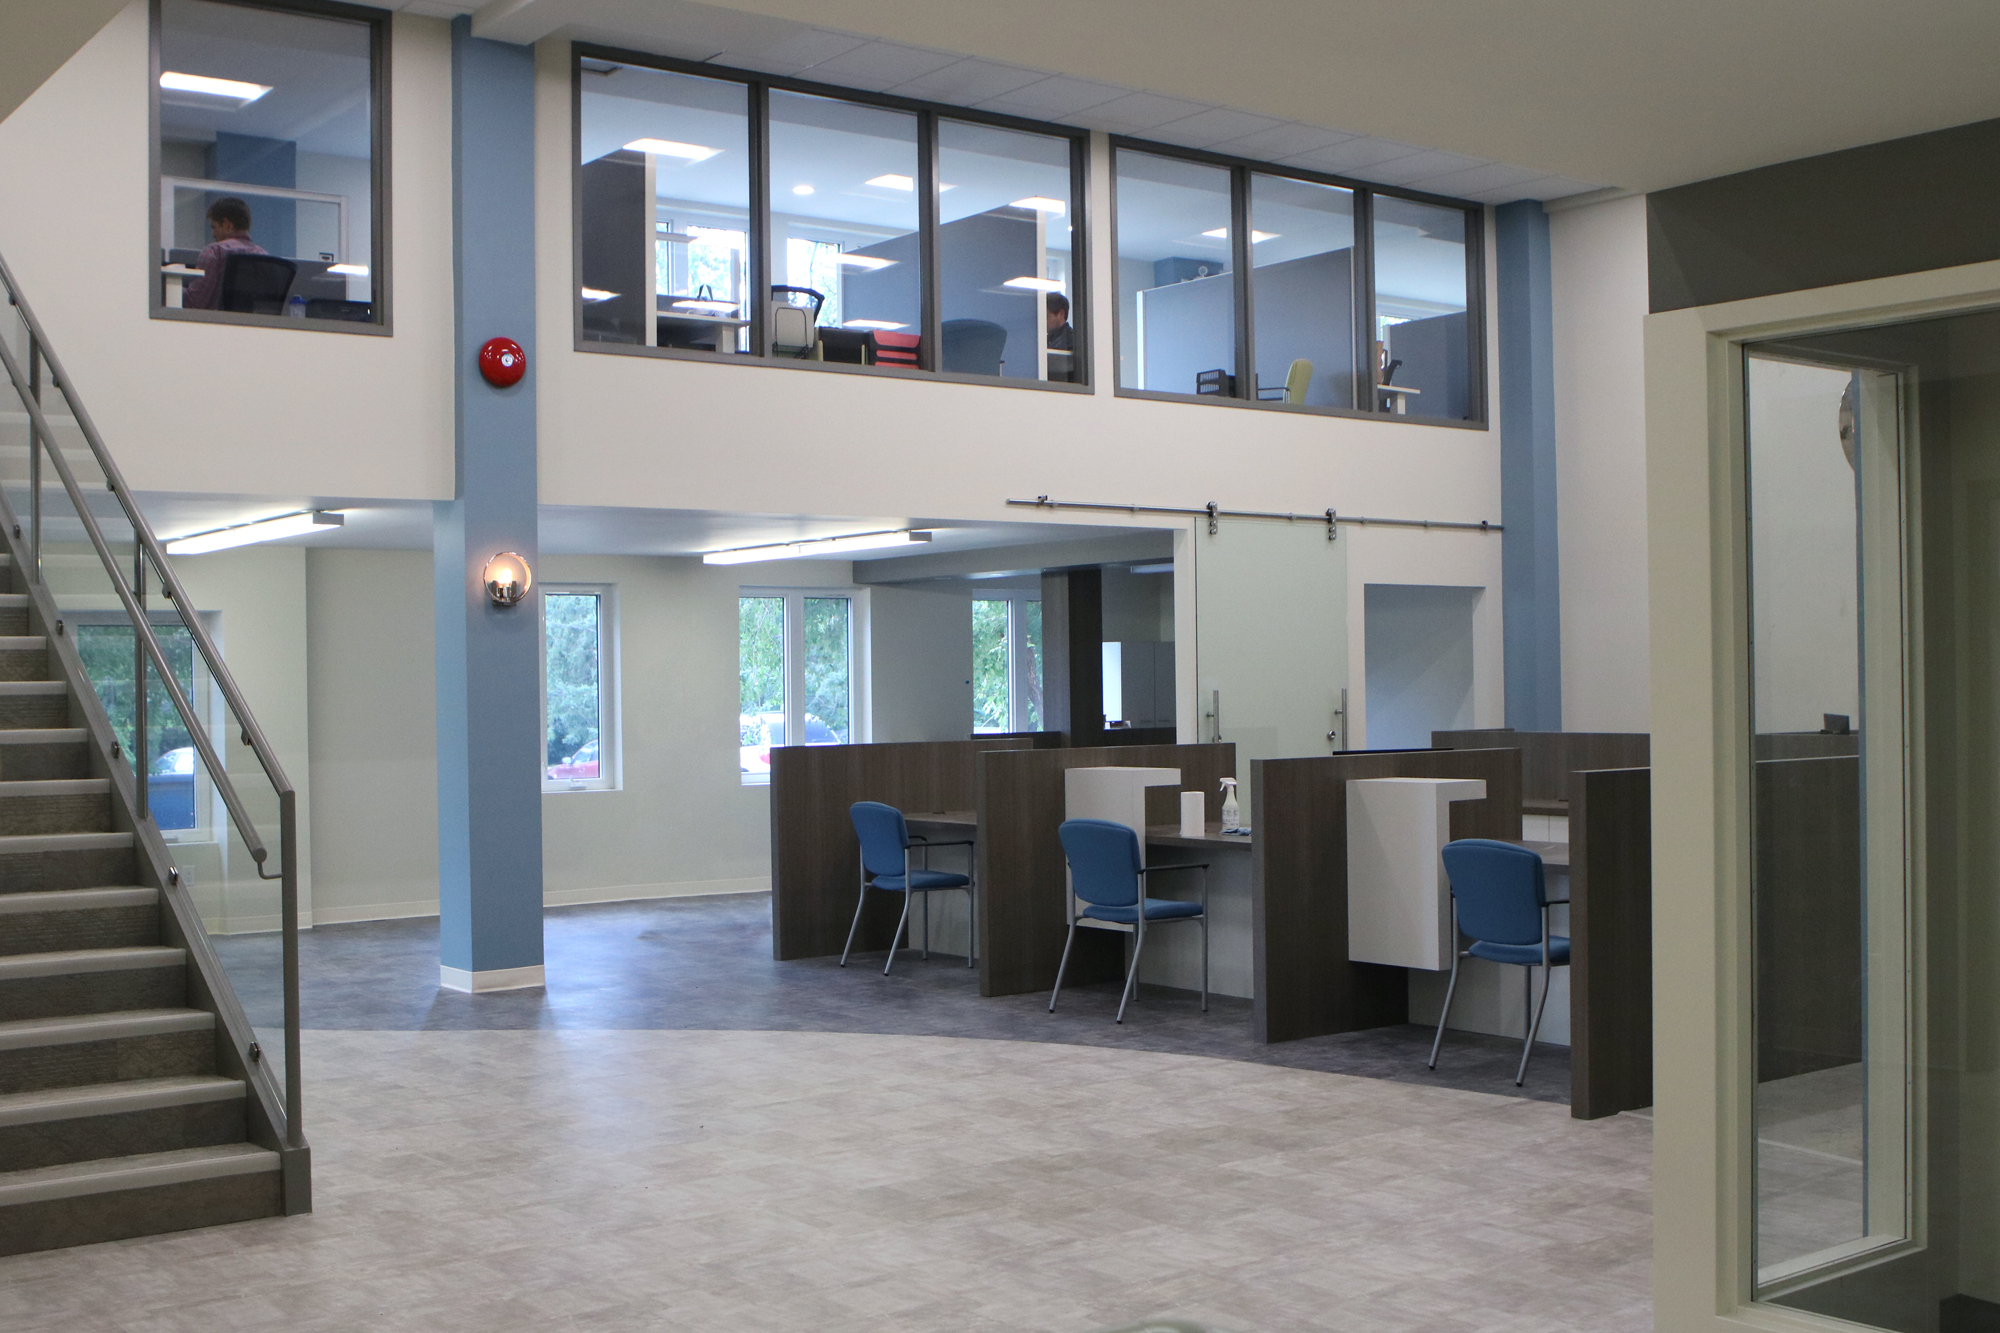 Providence employees move into completed Welcome Centre Image